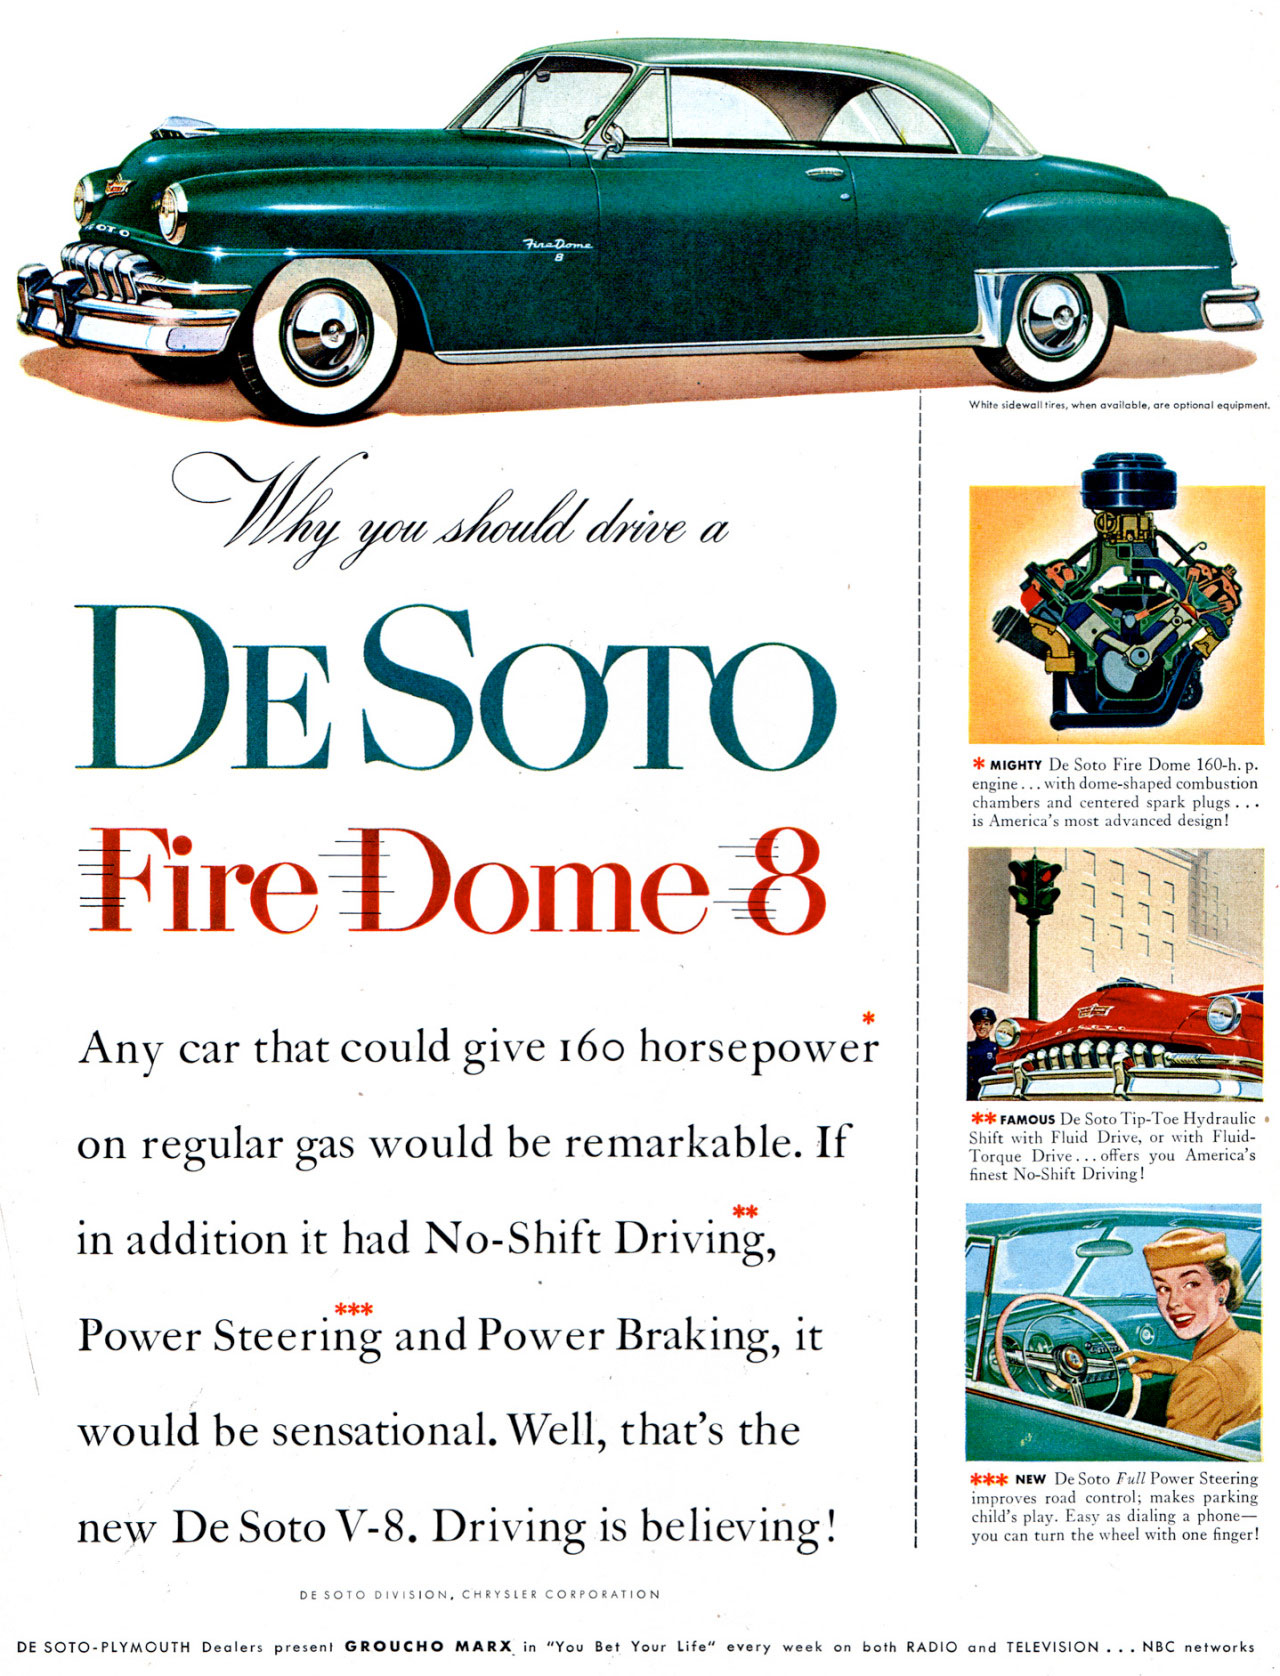 Why you should drive a DeSoto Fire Dome 8? Any car that could give 16o horsepower  on regular gas would be remarkable. If  . in addition it had No-Shift Driving,  Power Steering and Power Braking, it  would be sensational. Well, that's the  new De Soto V-8. Driving is believing!  DE SOTO DIVISION, CHRYSLER CORPORATION   MIGHTY De Soto Fire Dome 160-h. p. engine ... with dome-shaped combustion chambers and centered spark plugs ... is Americ., most advanced design!   **FAMOUS De Soto Tip-Toe Hydraulic Shift with Fluid Drive, or with Fluid-Torque Drive... offers you America's finest No-Shift Driving!   *TIT. NEW De Soto Full Power Steering improves road control; makes parking child's play. Easy as dialing a phone—you can turn the wheel with one finger!  DE SOTO-PLYMOUTH Dealers present GROUCHO MARX in ''You Bet Your Life'' every week on both RADIO and TELEVISION ... NBC networks